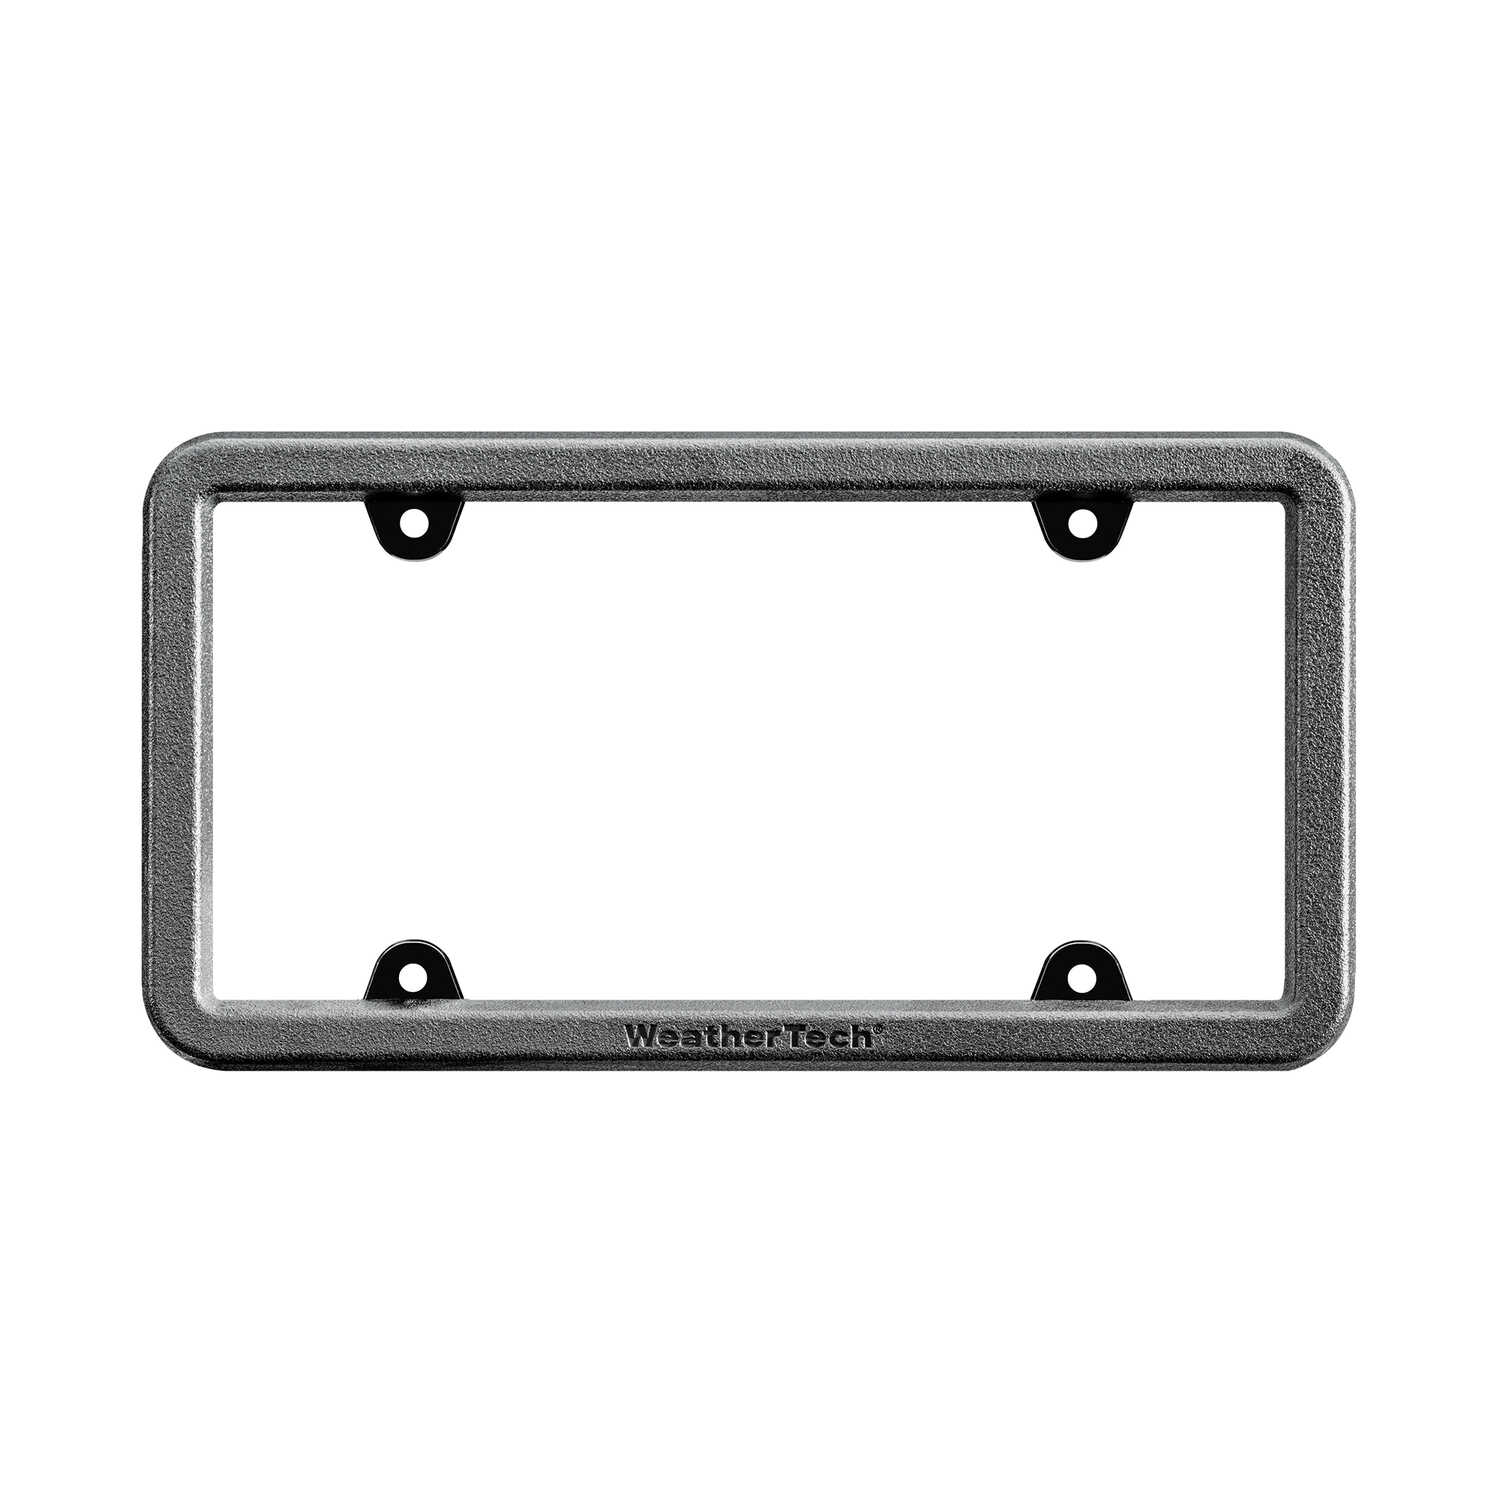 WeatherTech  Polycarbonate  Black  License Plate Bumper Frame